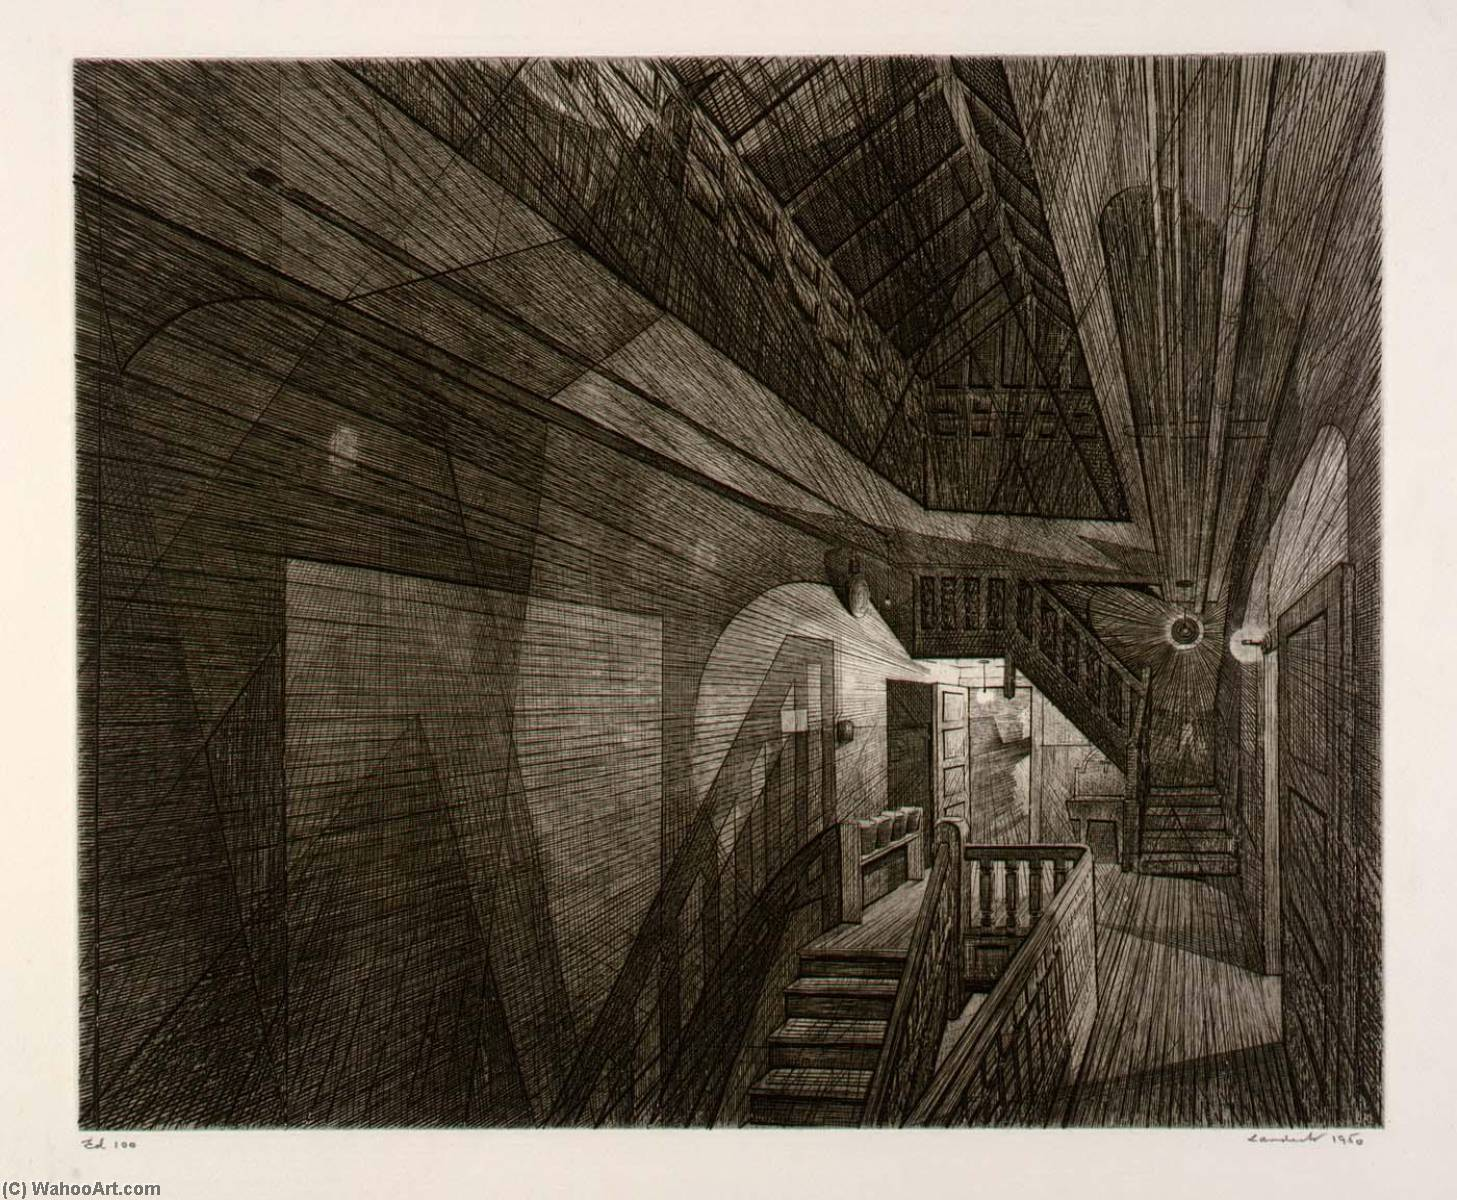 Stairhall, 1950 by Armin Landeck | Reproductions Armin Landeck | WahooArt.com